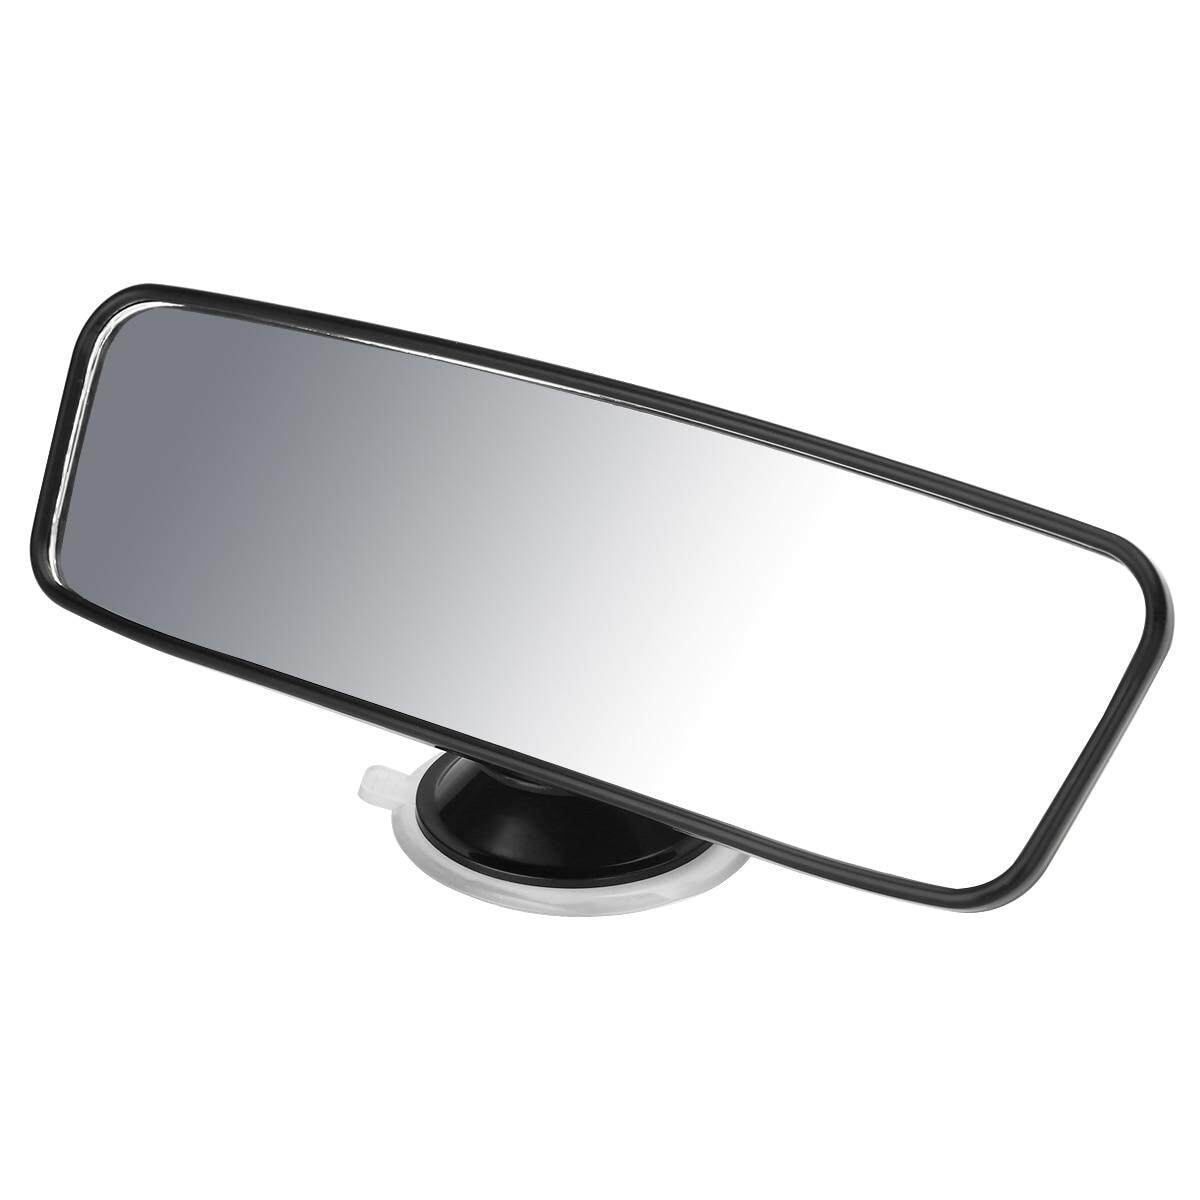 20*6cm Universal Car Back Seat Baby View Truck Wide Flat Interior Rear View Rearview Mirror Suction Cup Car Baby Kids Monitor